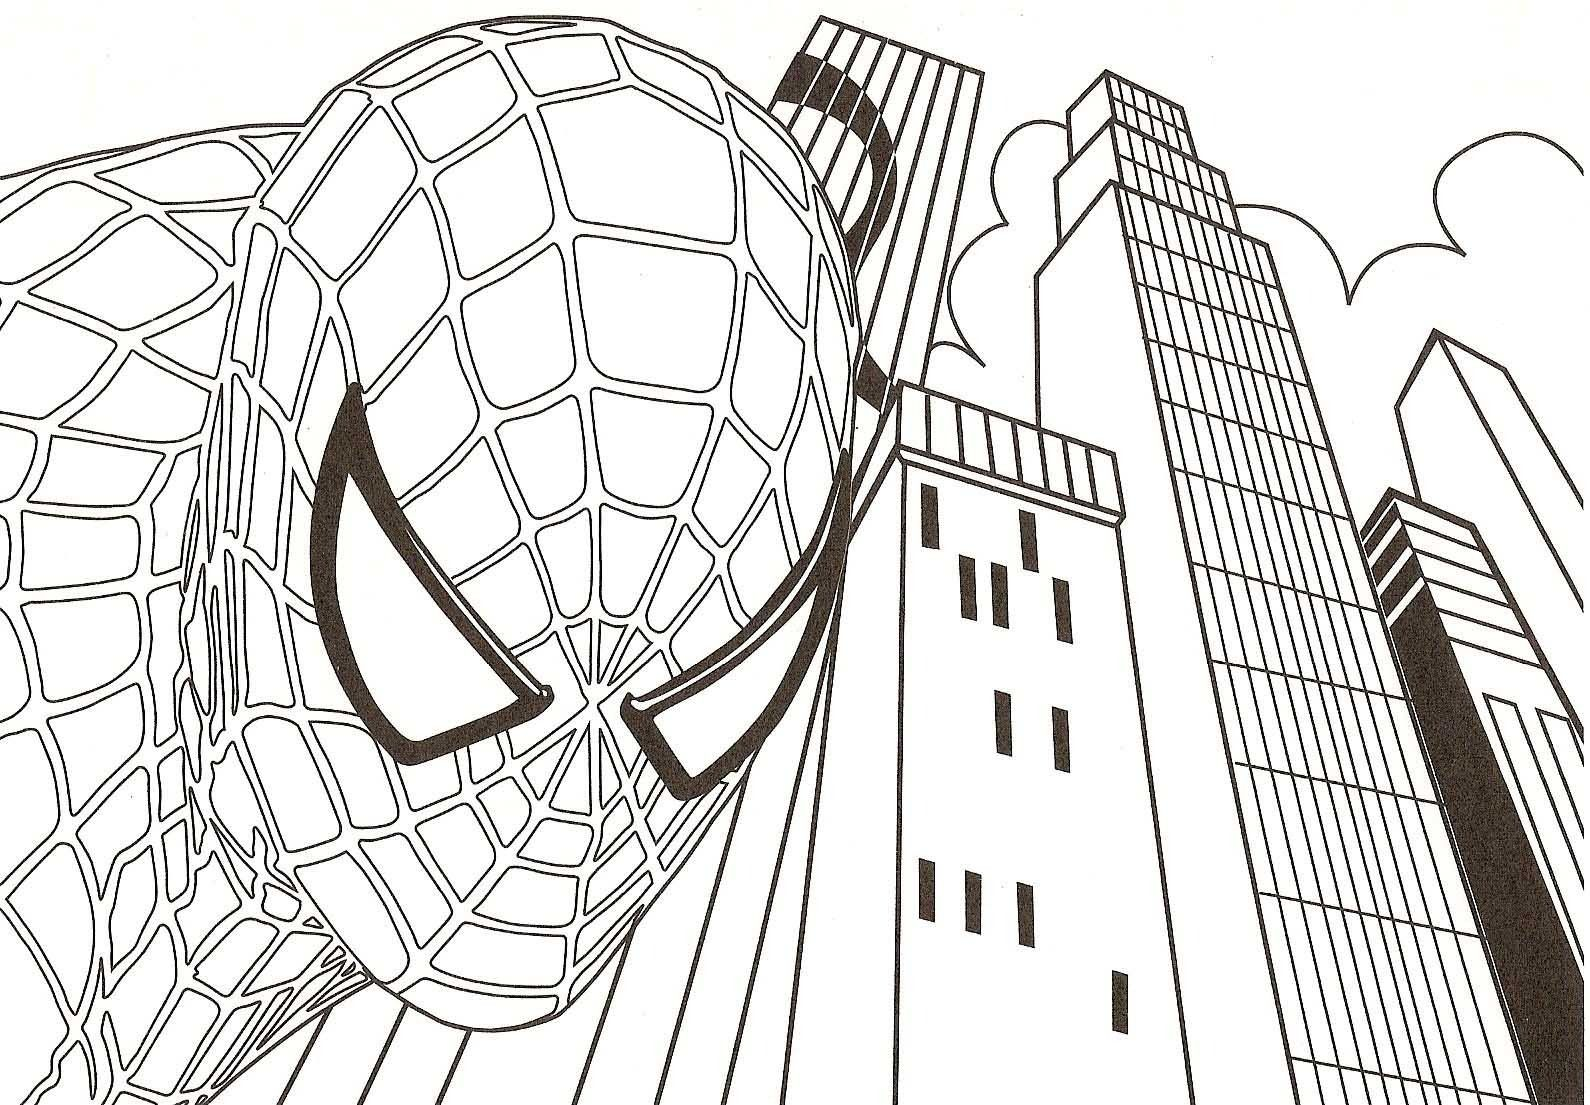 Free Printable Spiderman Colouring Games To Color | Coloring Pages ...